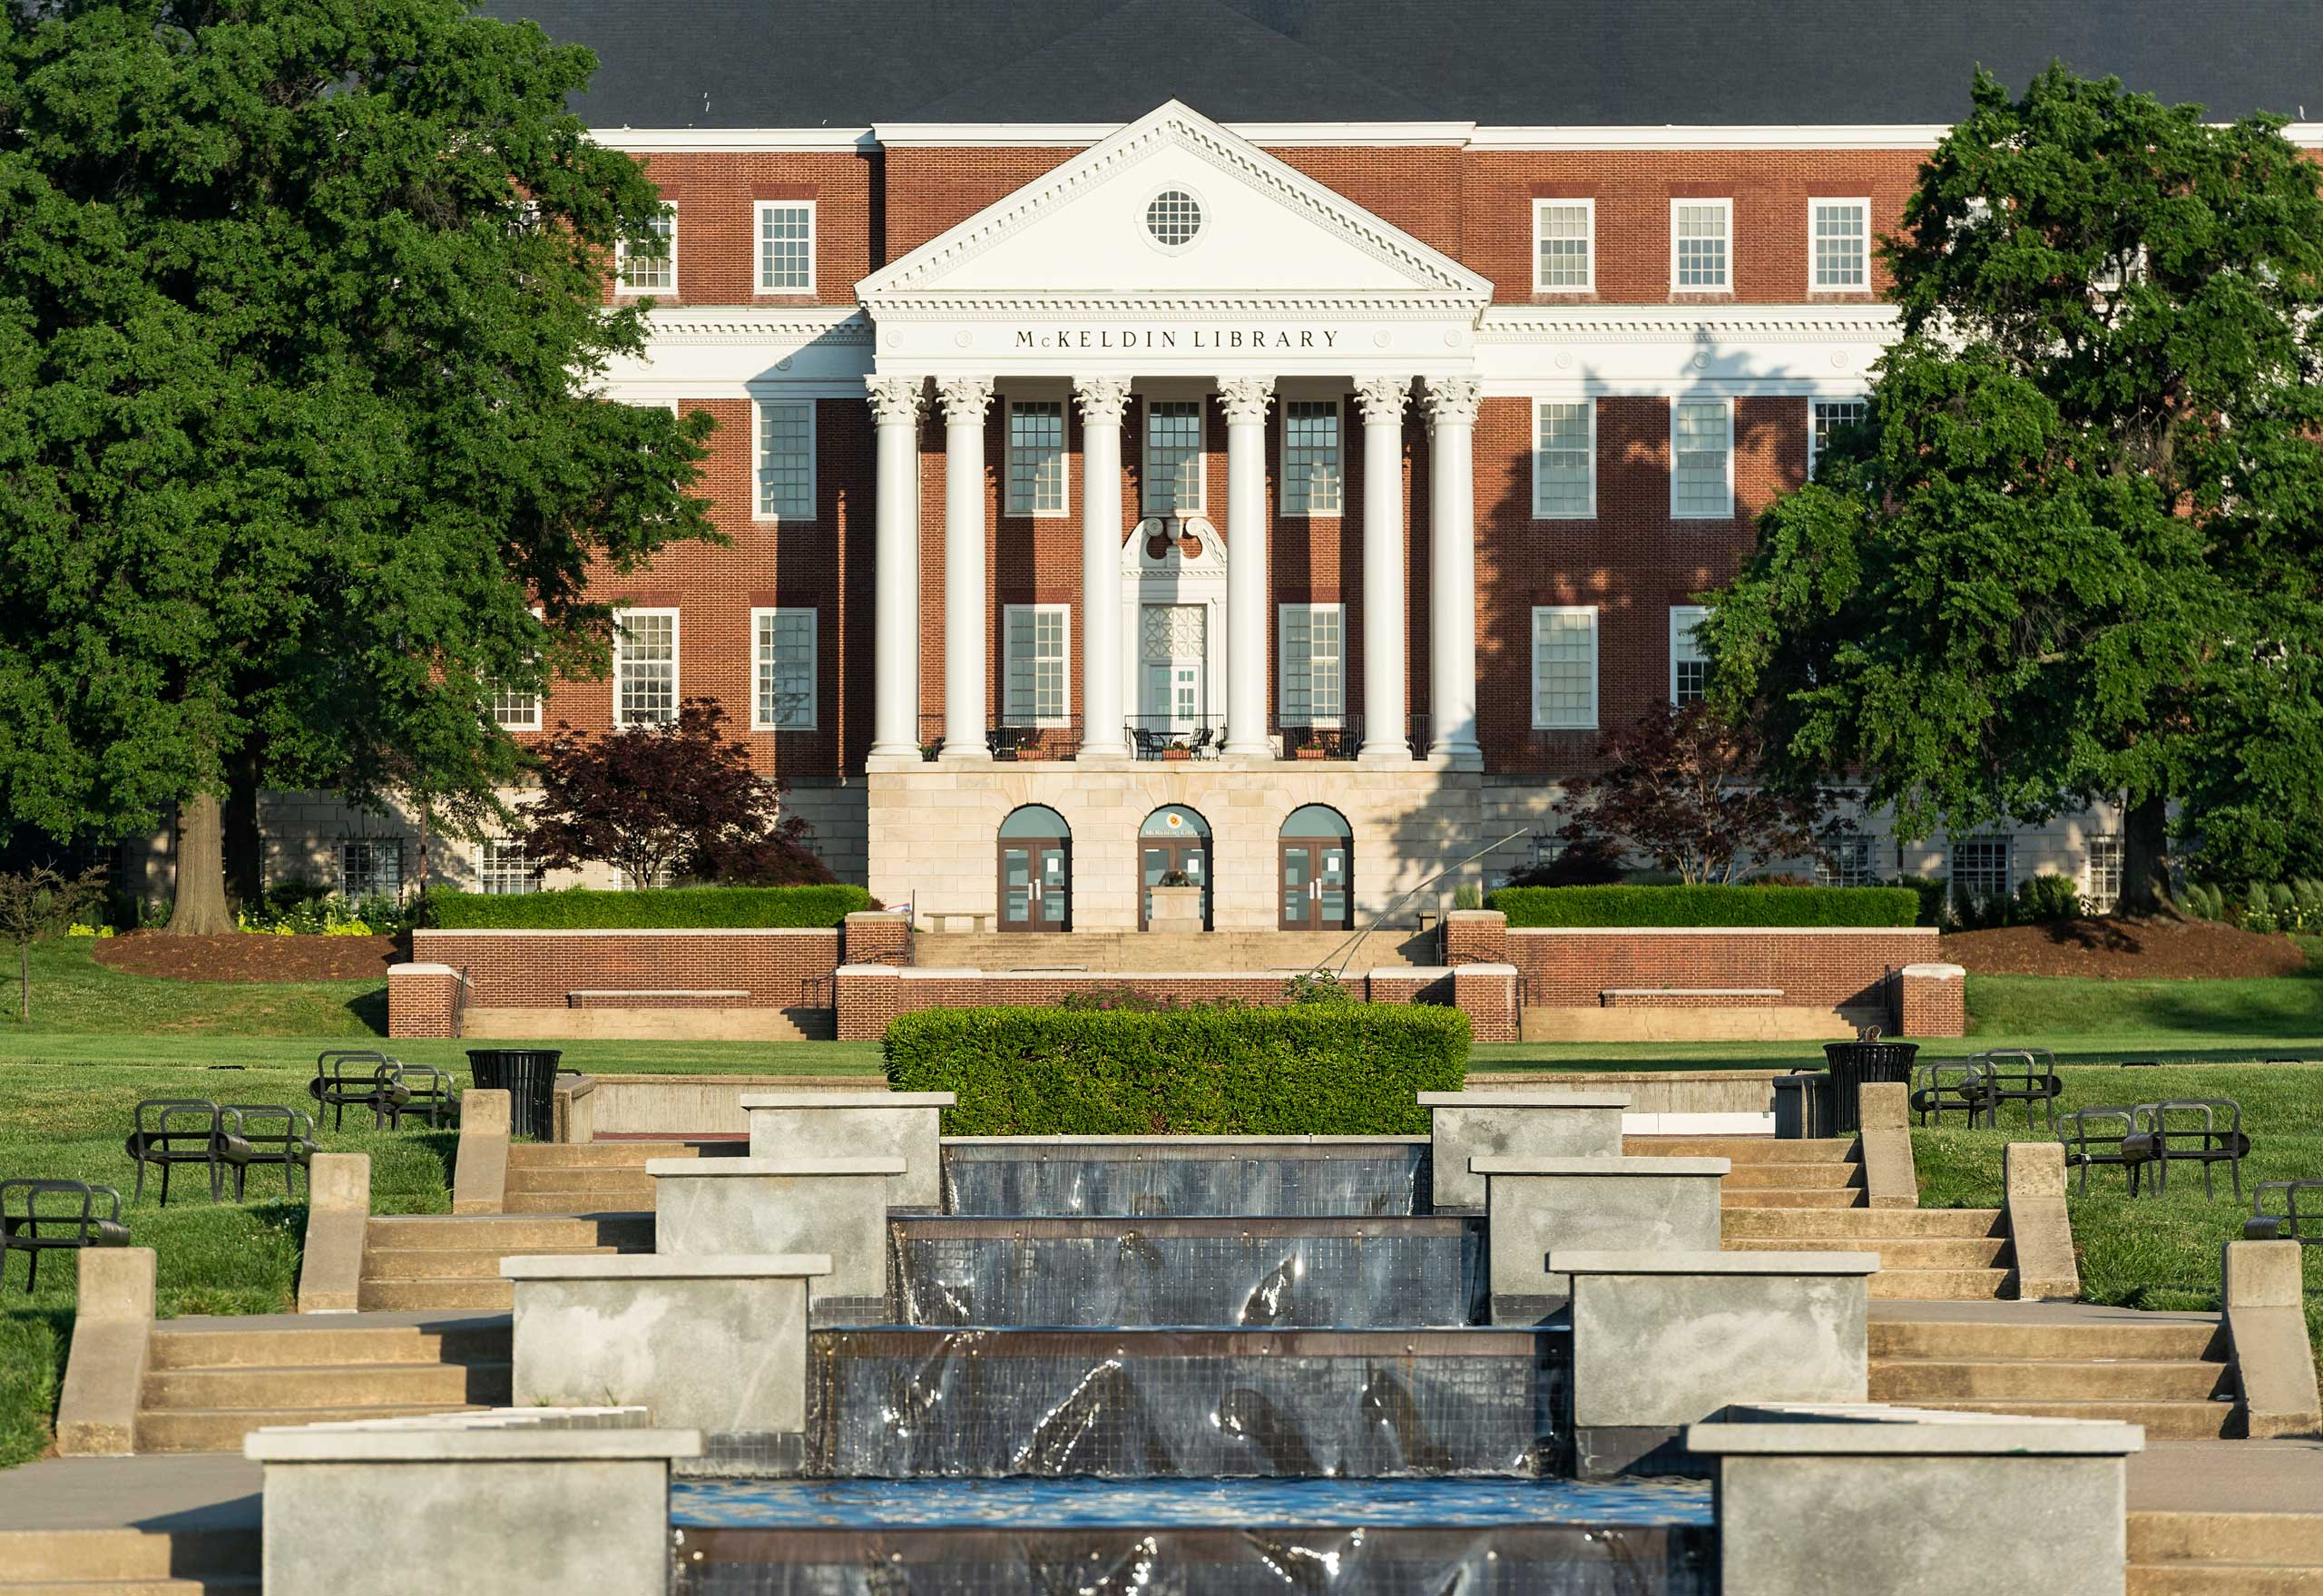 McKeldin Library and fountain, University of Maryland.